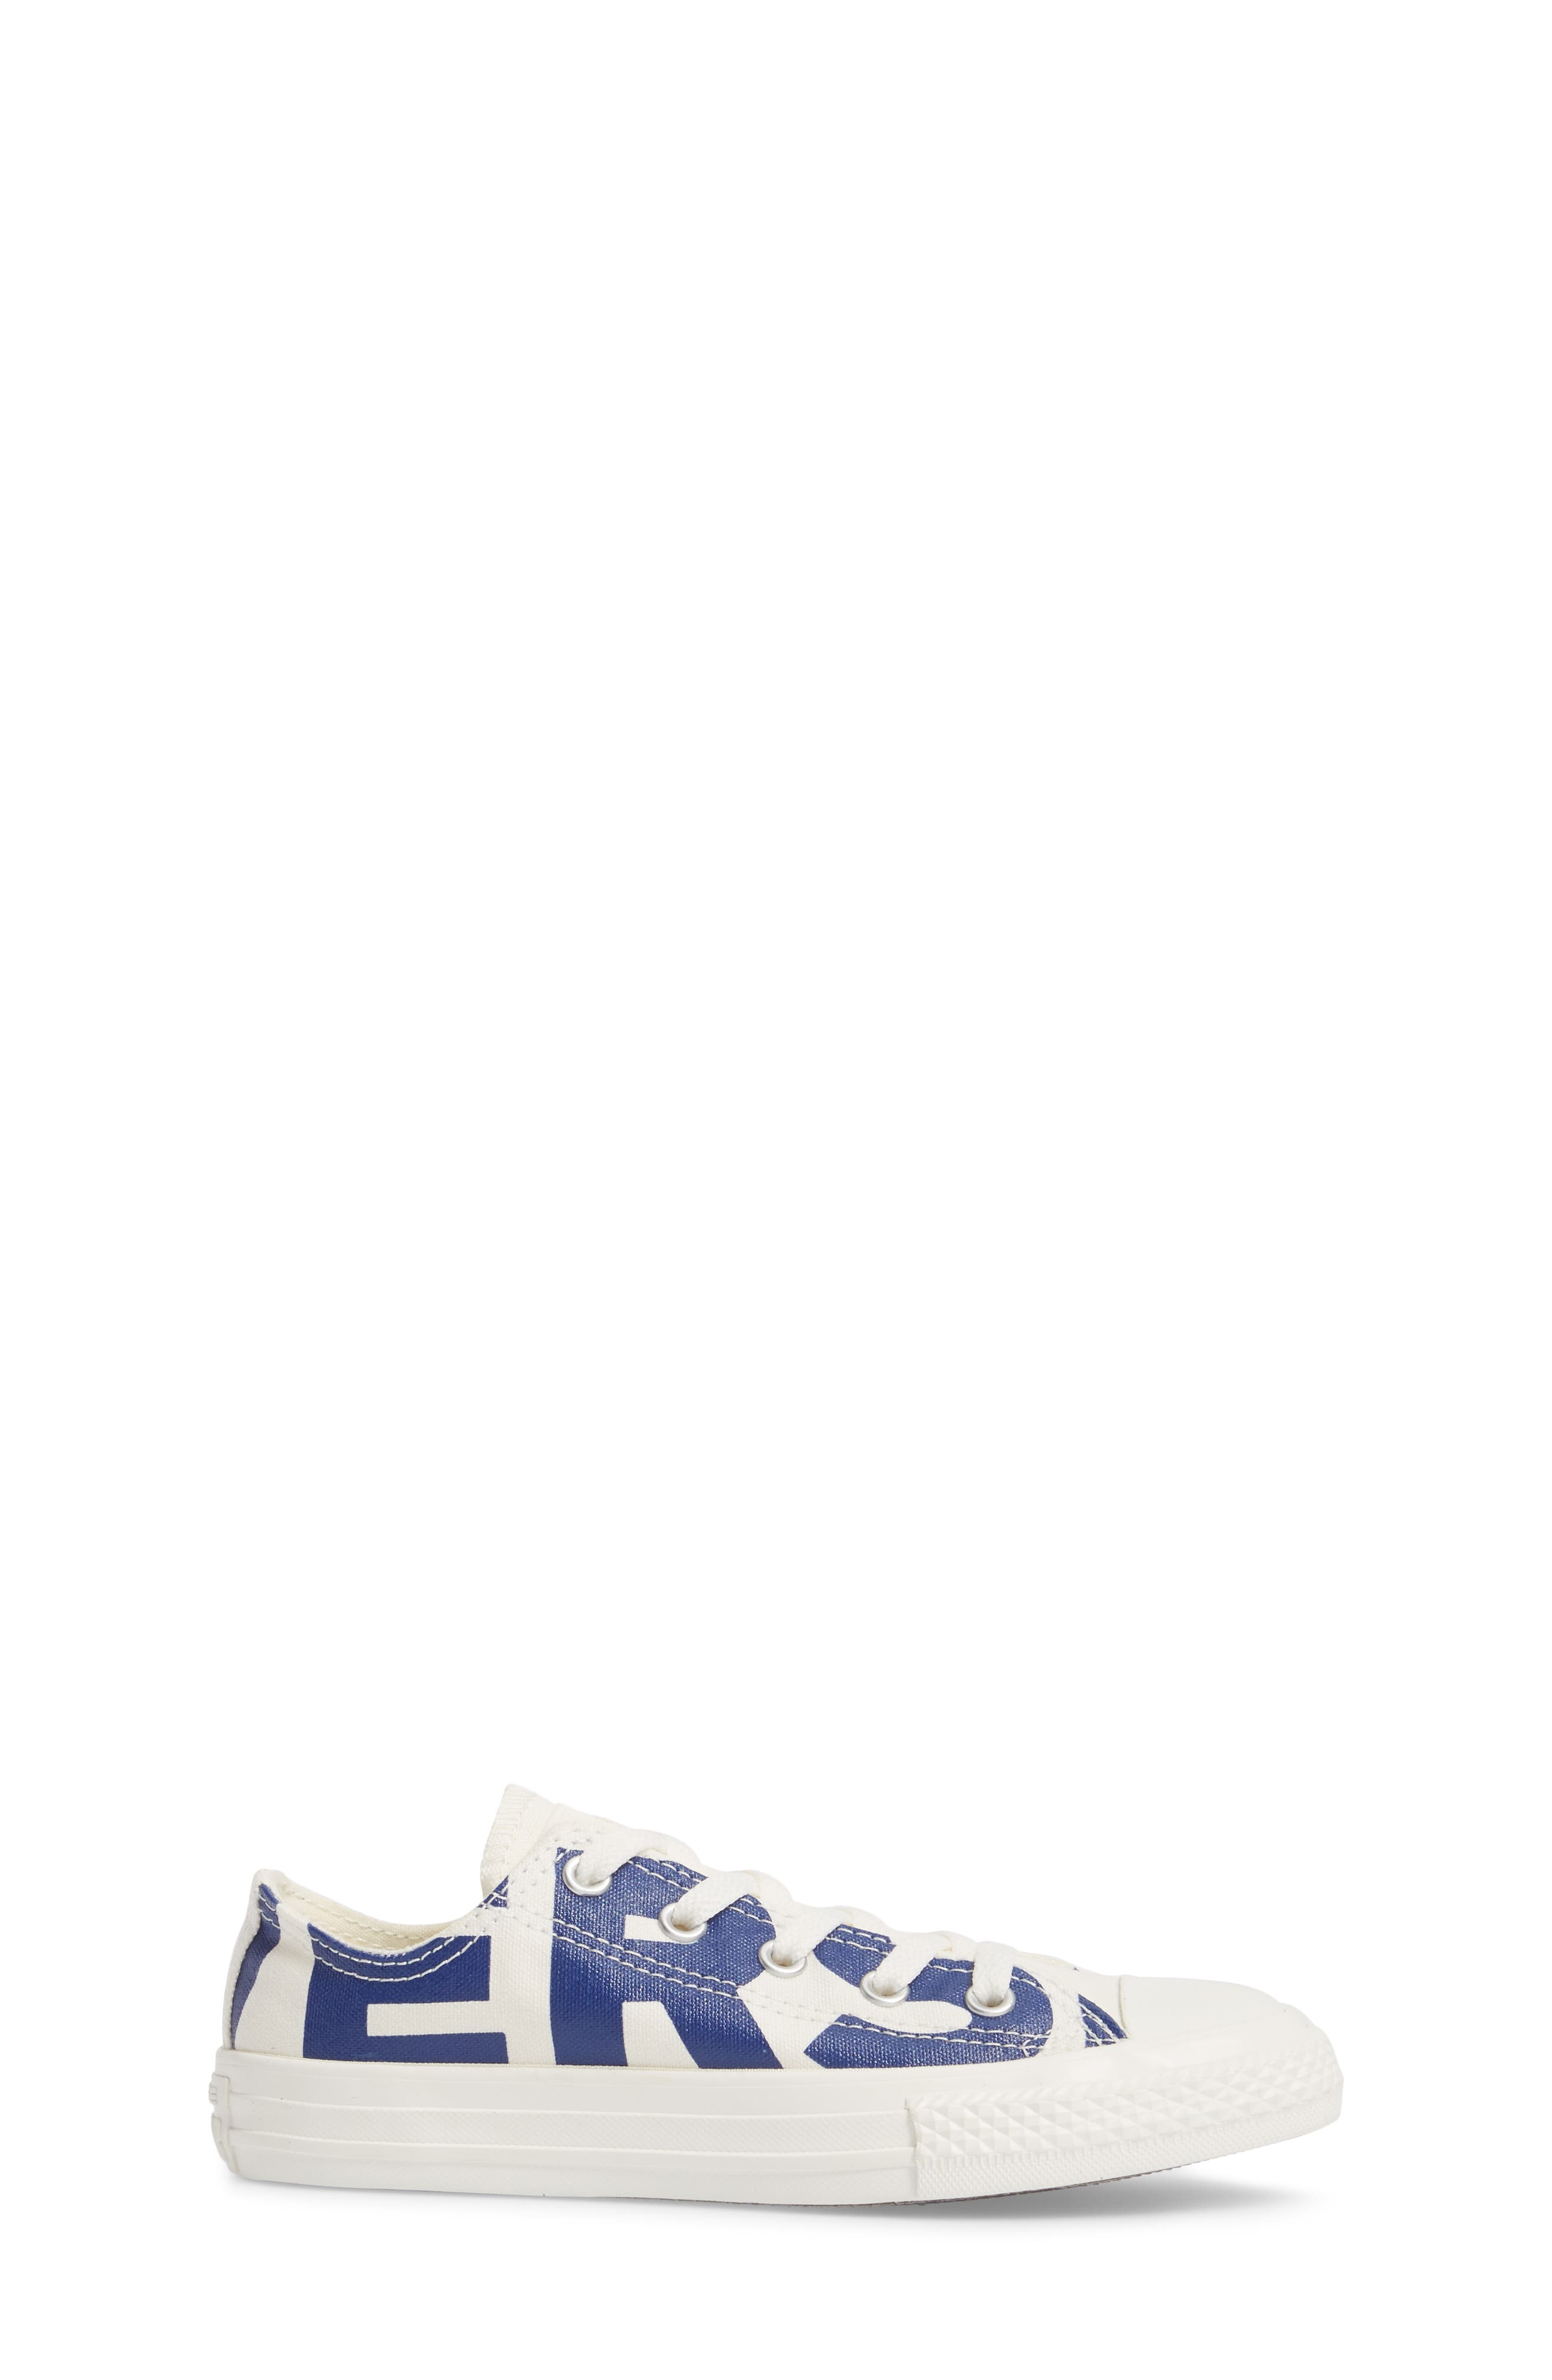 All Star<sup>®</sup> Wordmark OX Low Top Sneaker,                             Alternate thumbnail 3, color,                             400